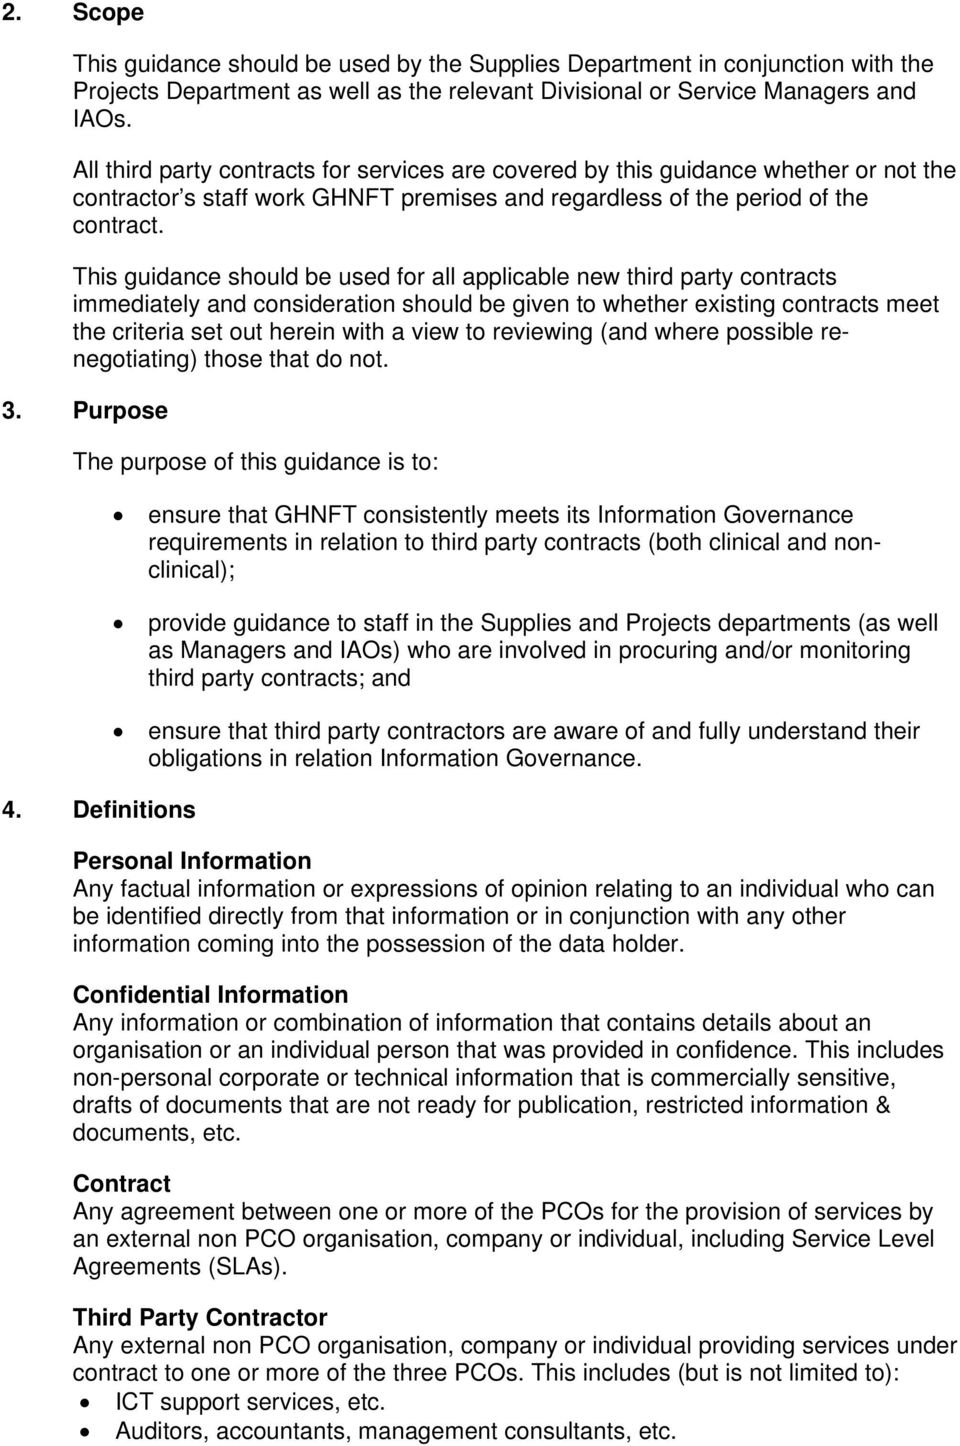 This guidance should be used for all applicable new third party contracts immediately and consideration should be given to whether existing contracts meet the criteria set out herein with a view to